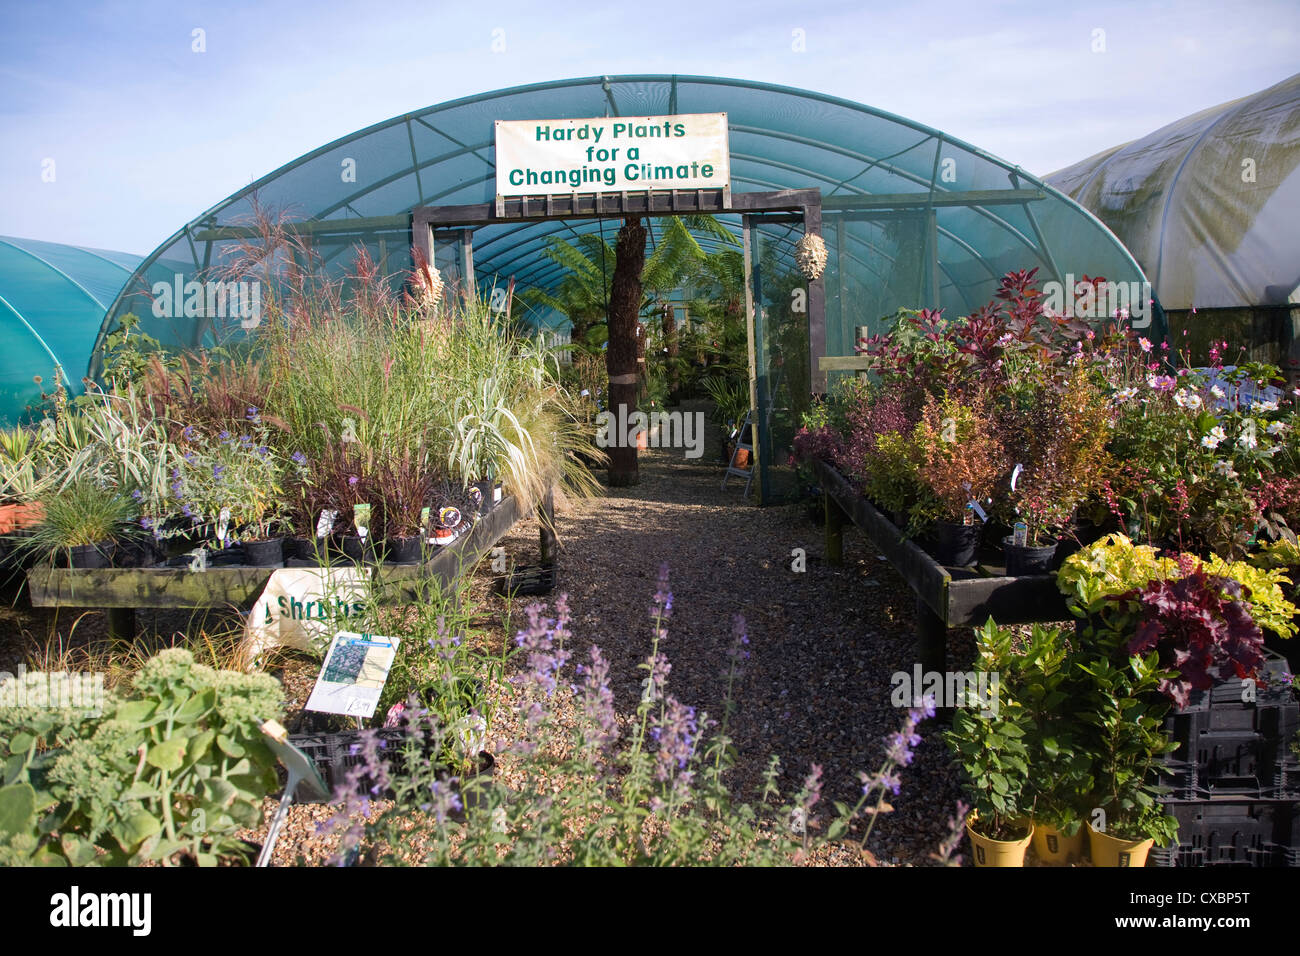 The Exotic Garden Company Hardy Plants for a Changing Climate nursery, Aldeburgh, Suffolk, England - Stock Image